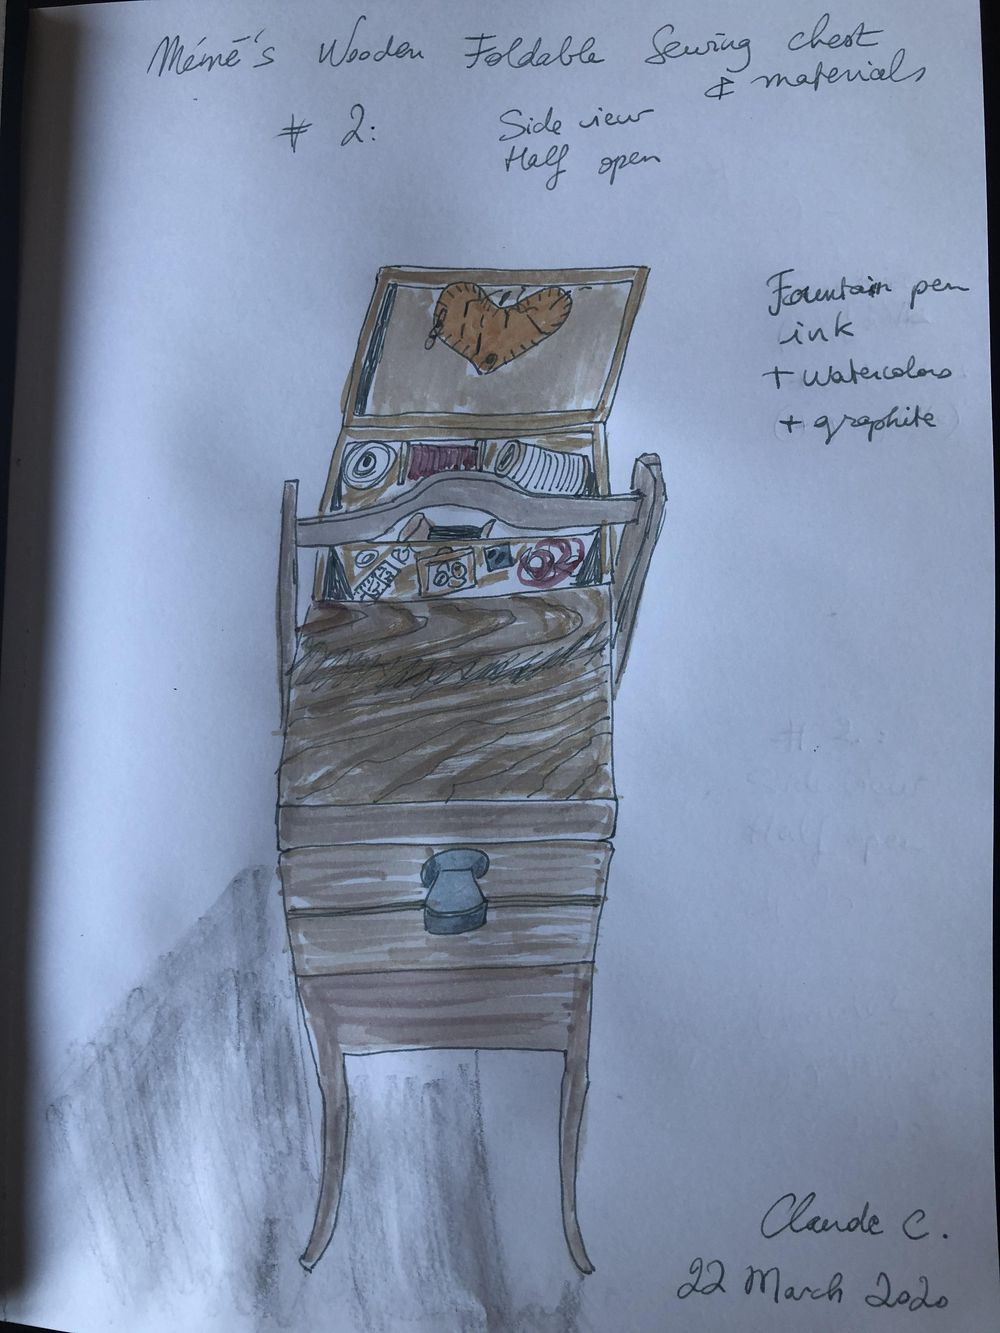 Grandma's Wooden Foldable Sewing Chest - image 3 - student project